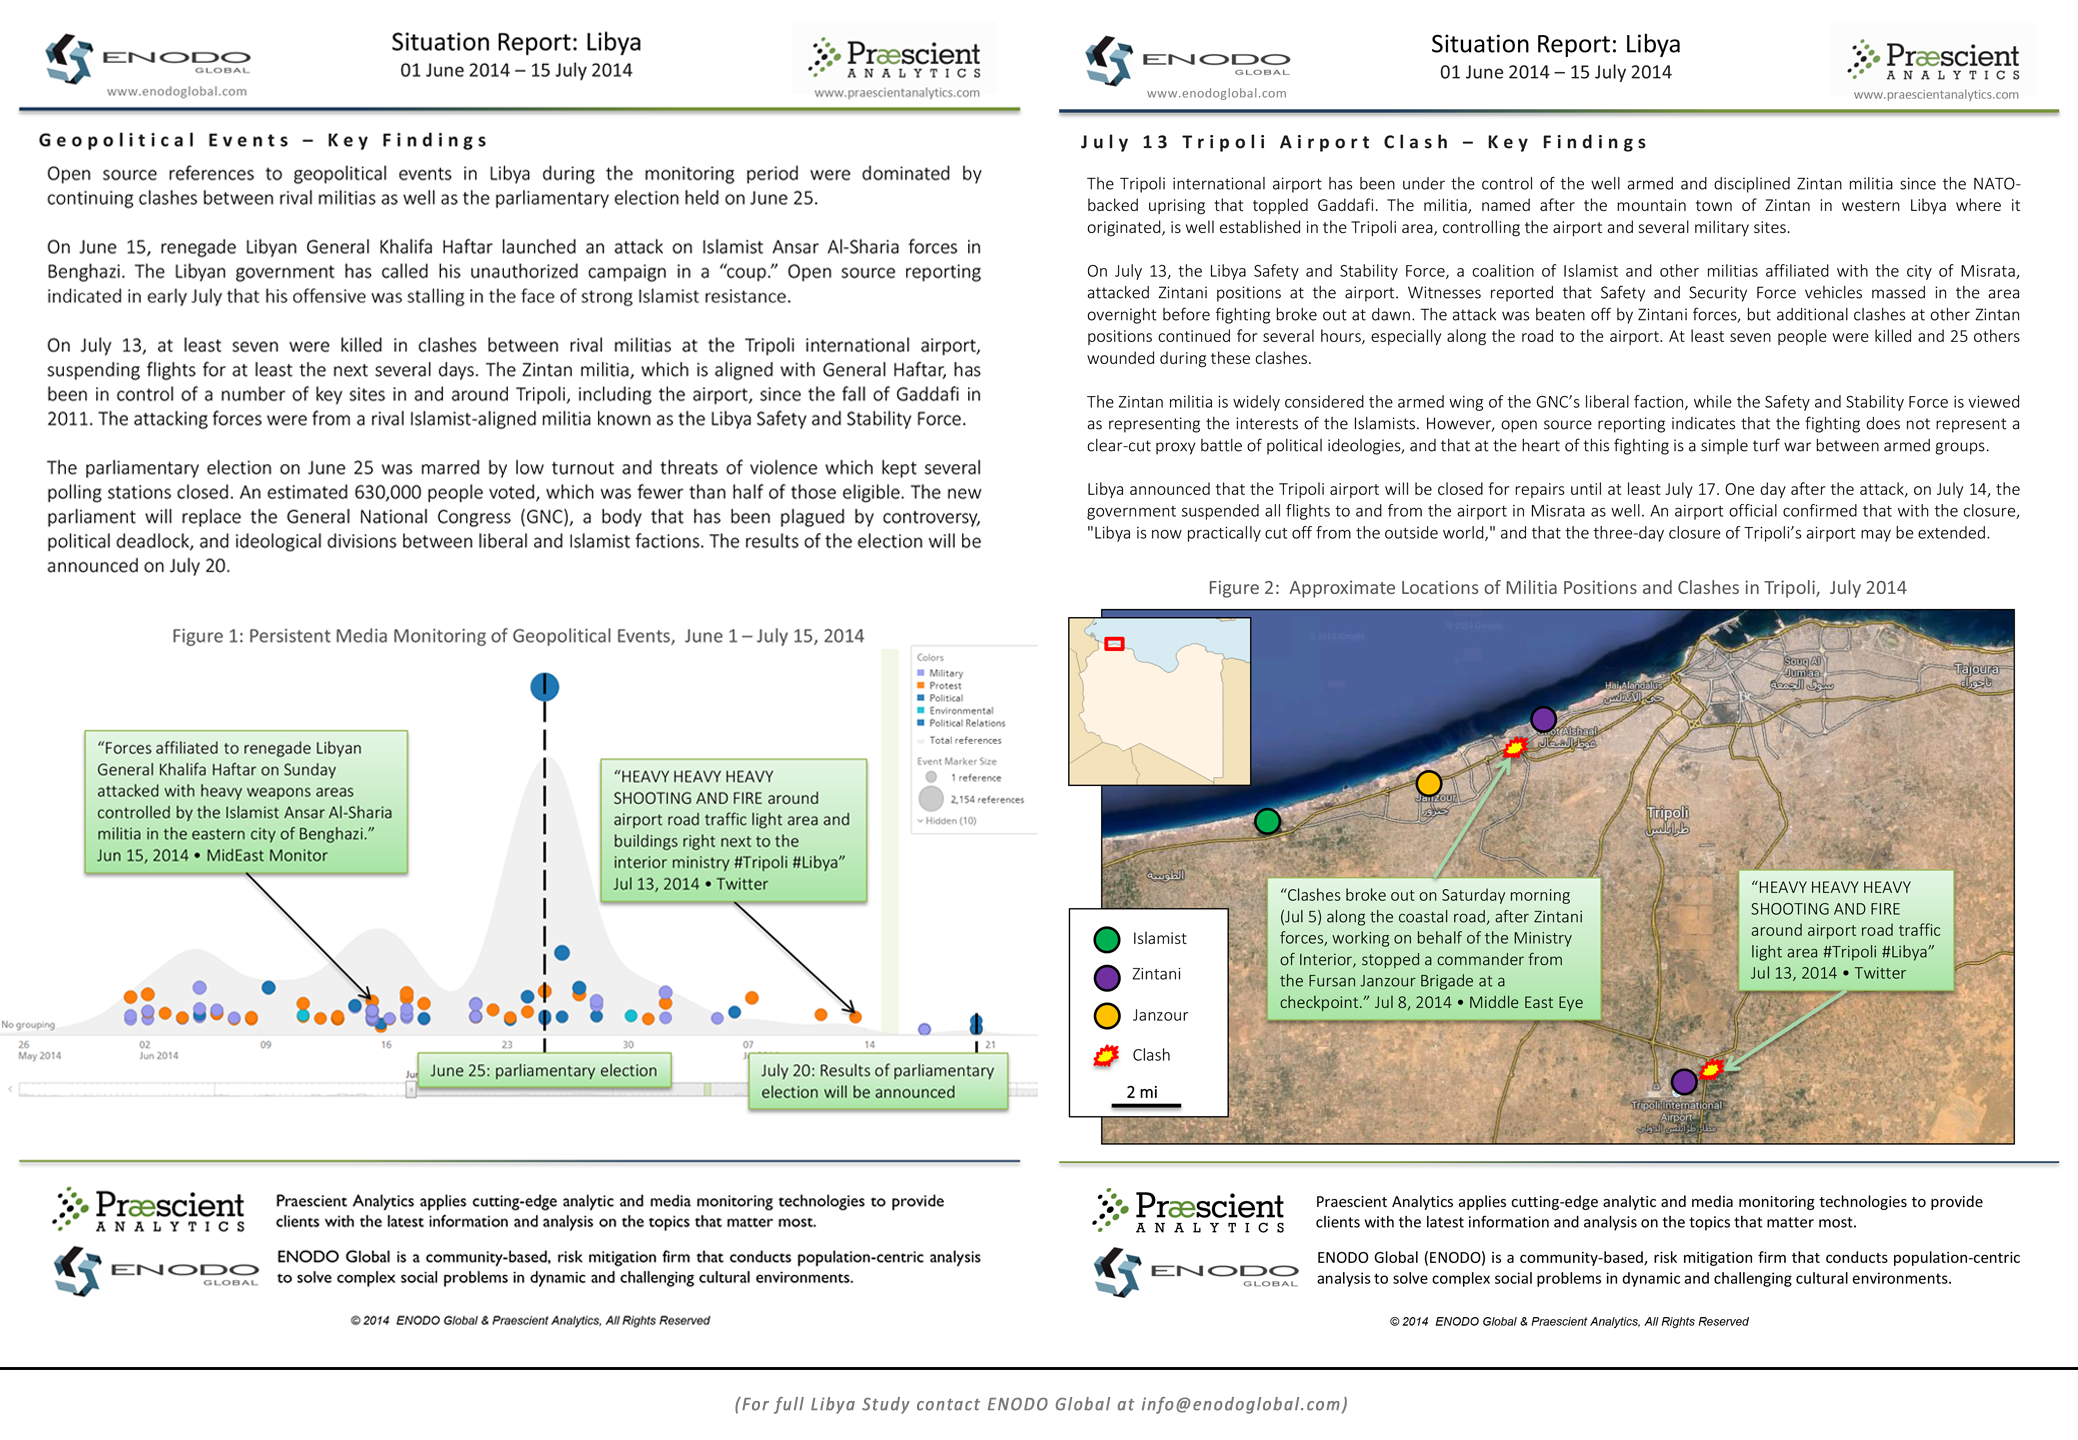 SitRep-Libya-June-July-2014